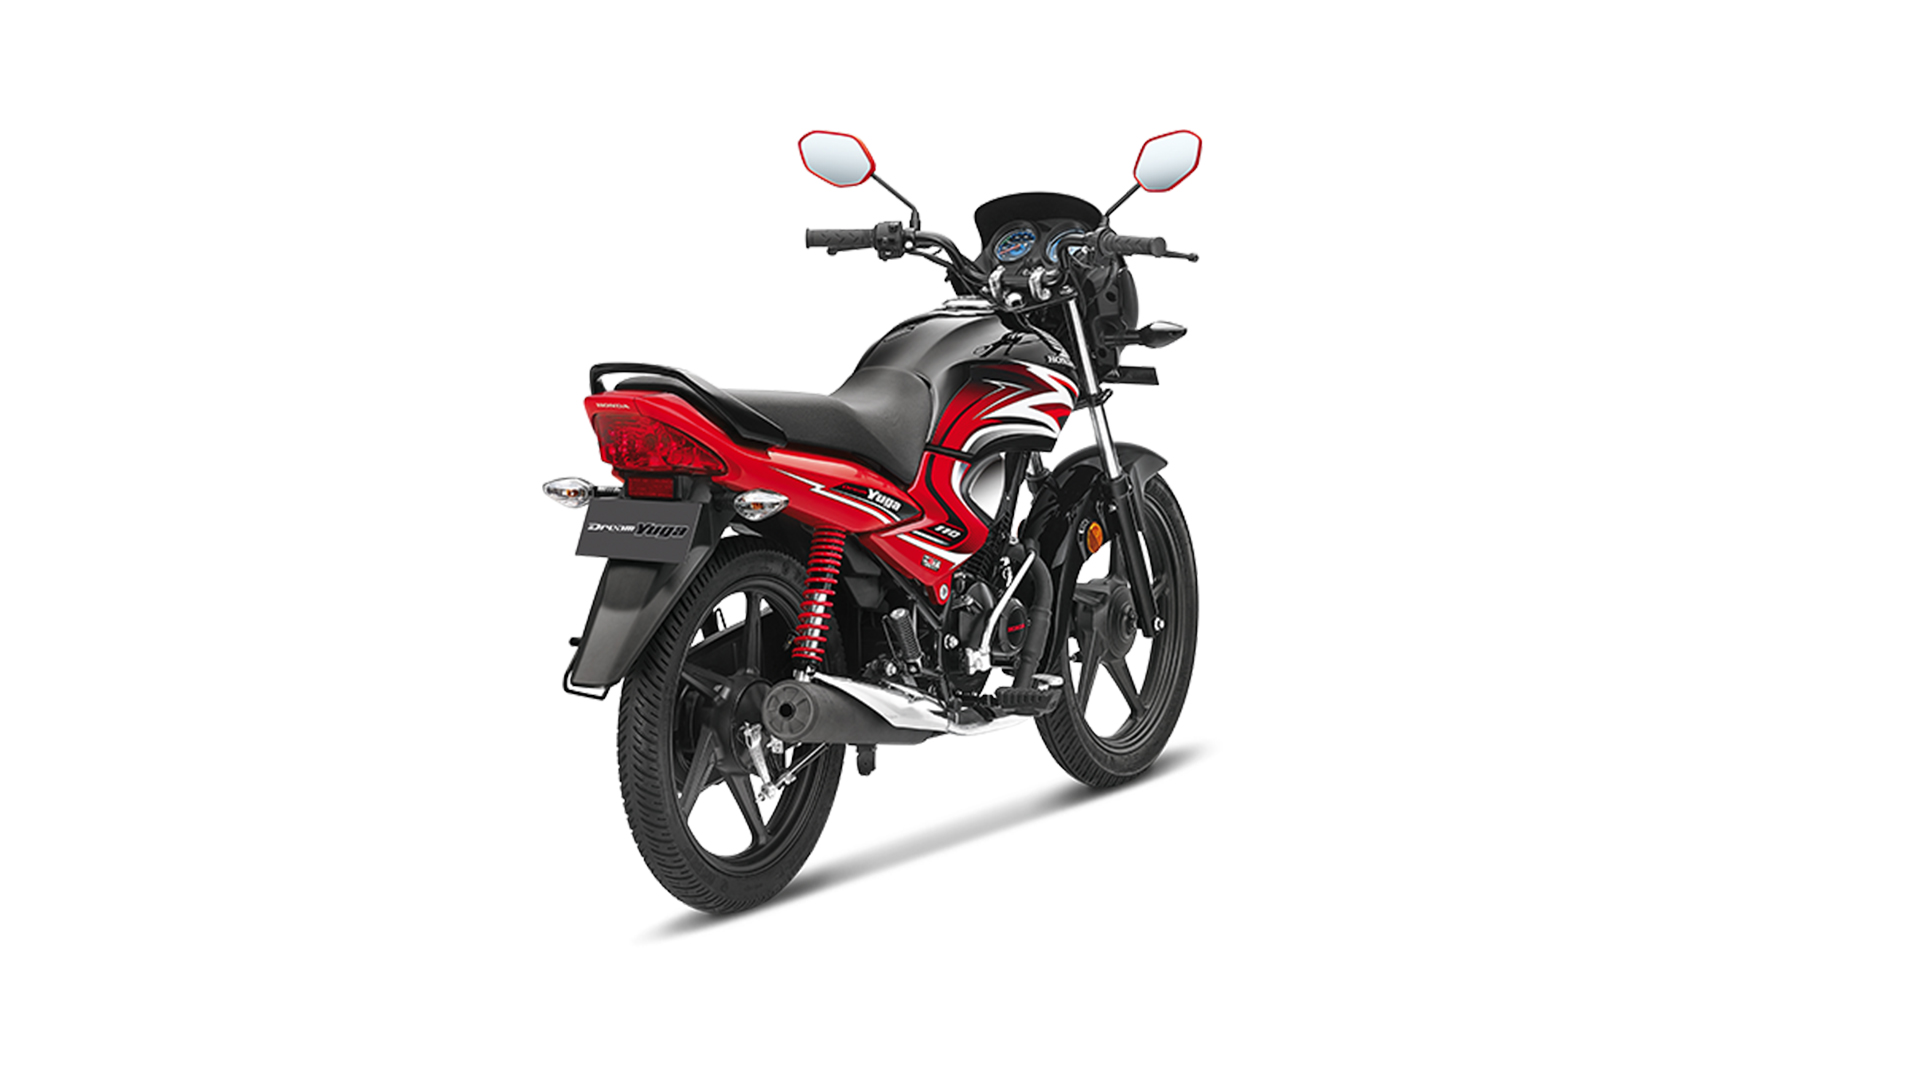 Honda Dream Yuga 2018 Self Drum Alloy Price Mileage Reviews Specification Gallery Overdrive